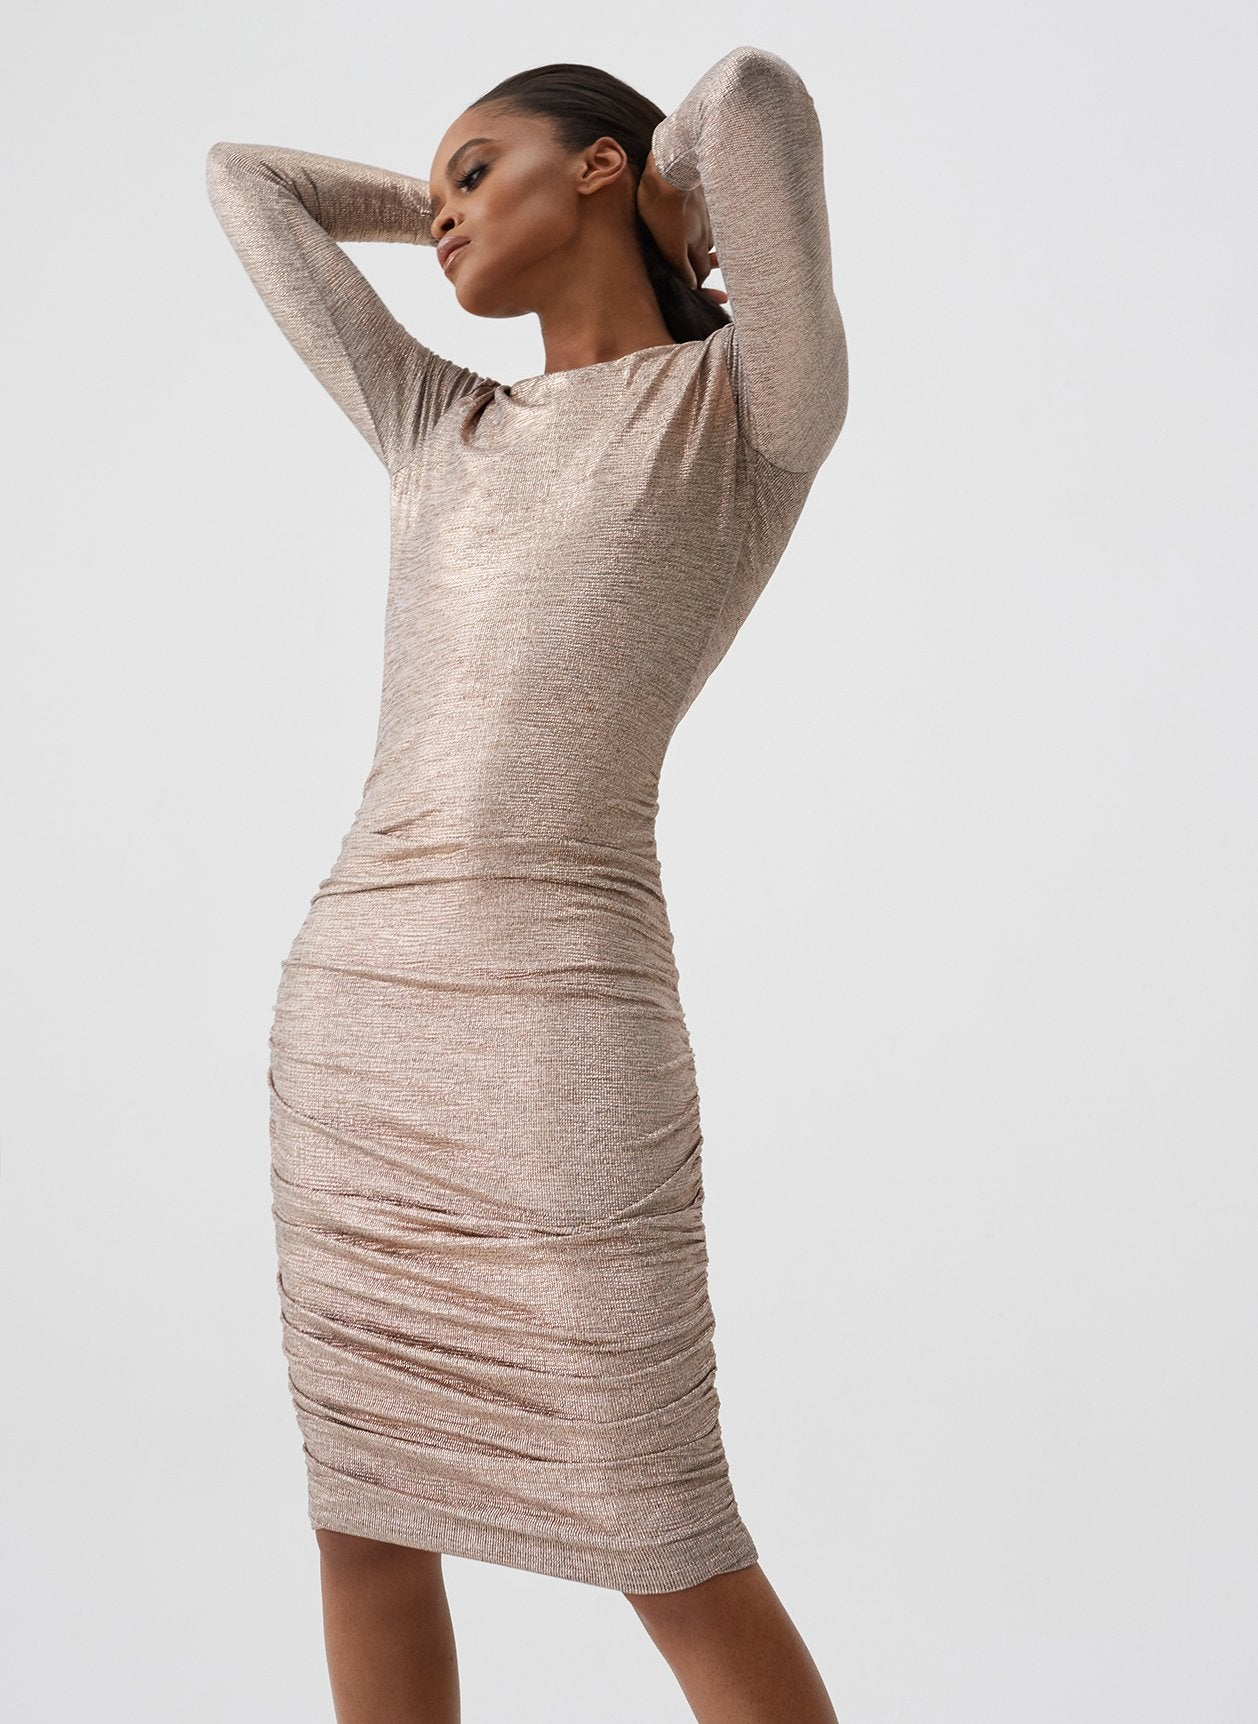 Taylor Rose Gold Midi Dress